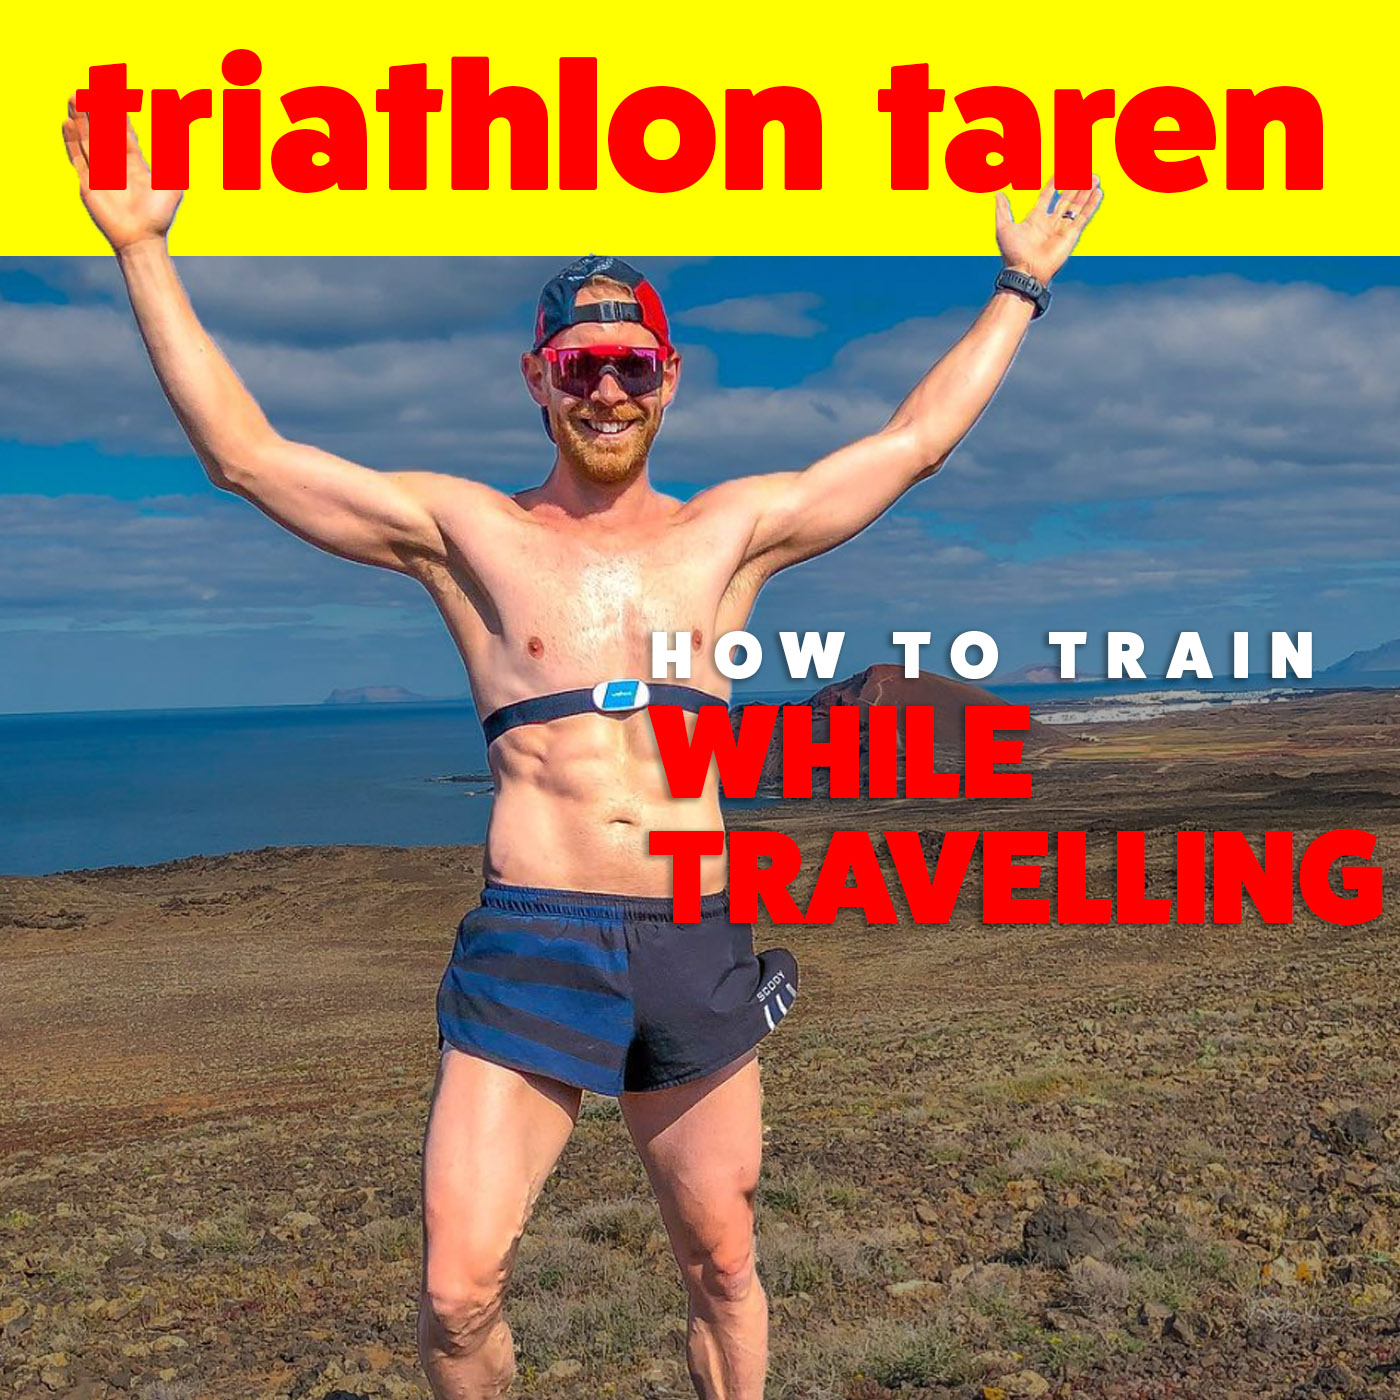 Triathlon Training While Travelling